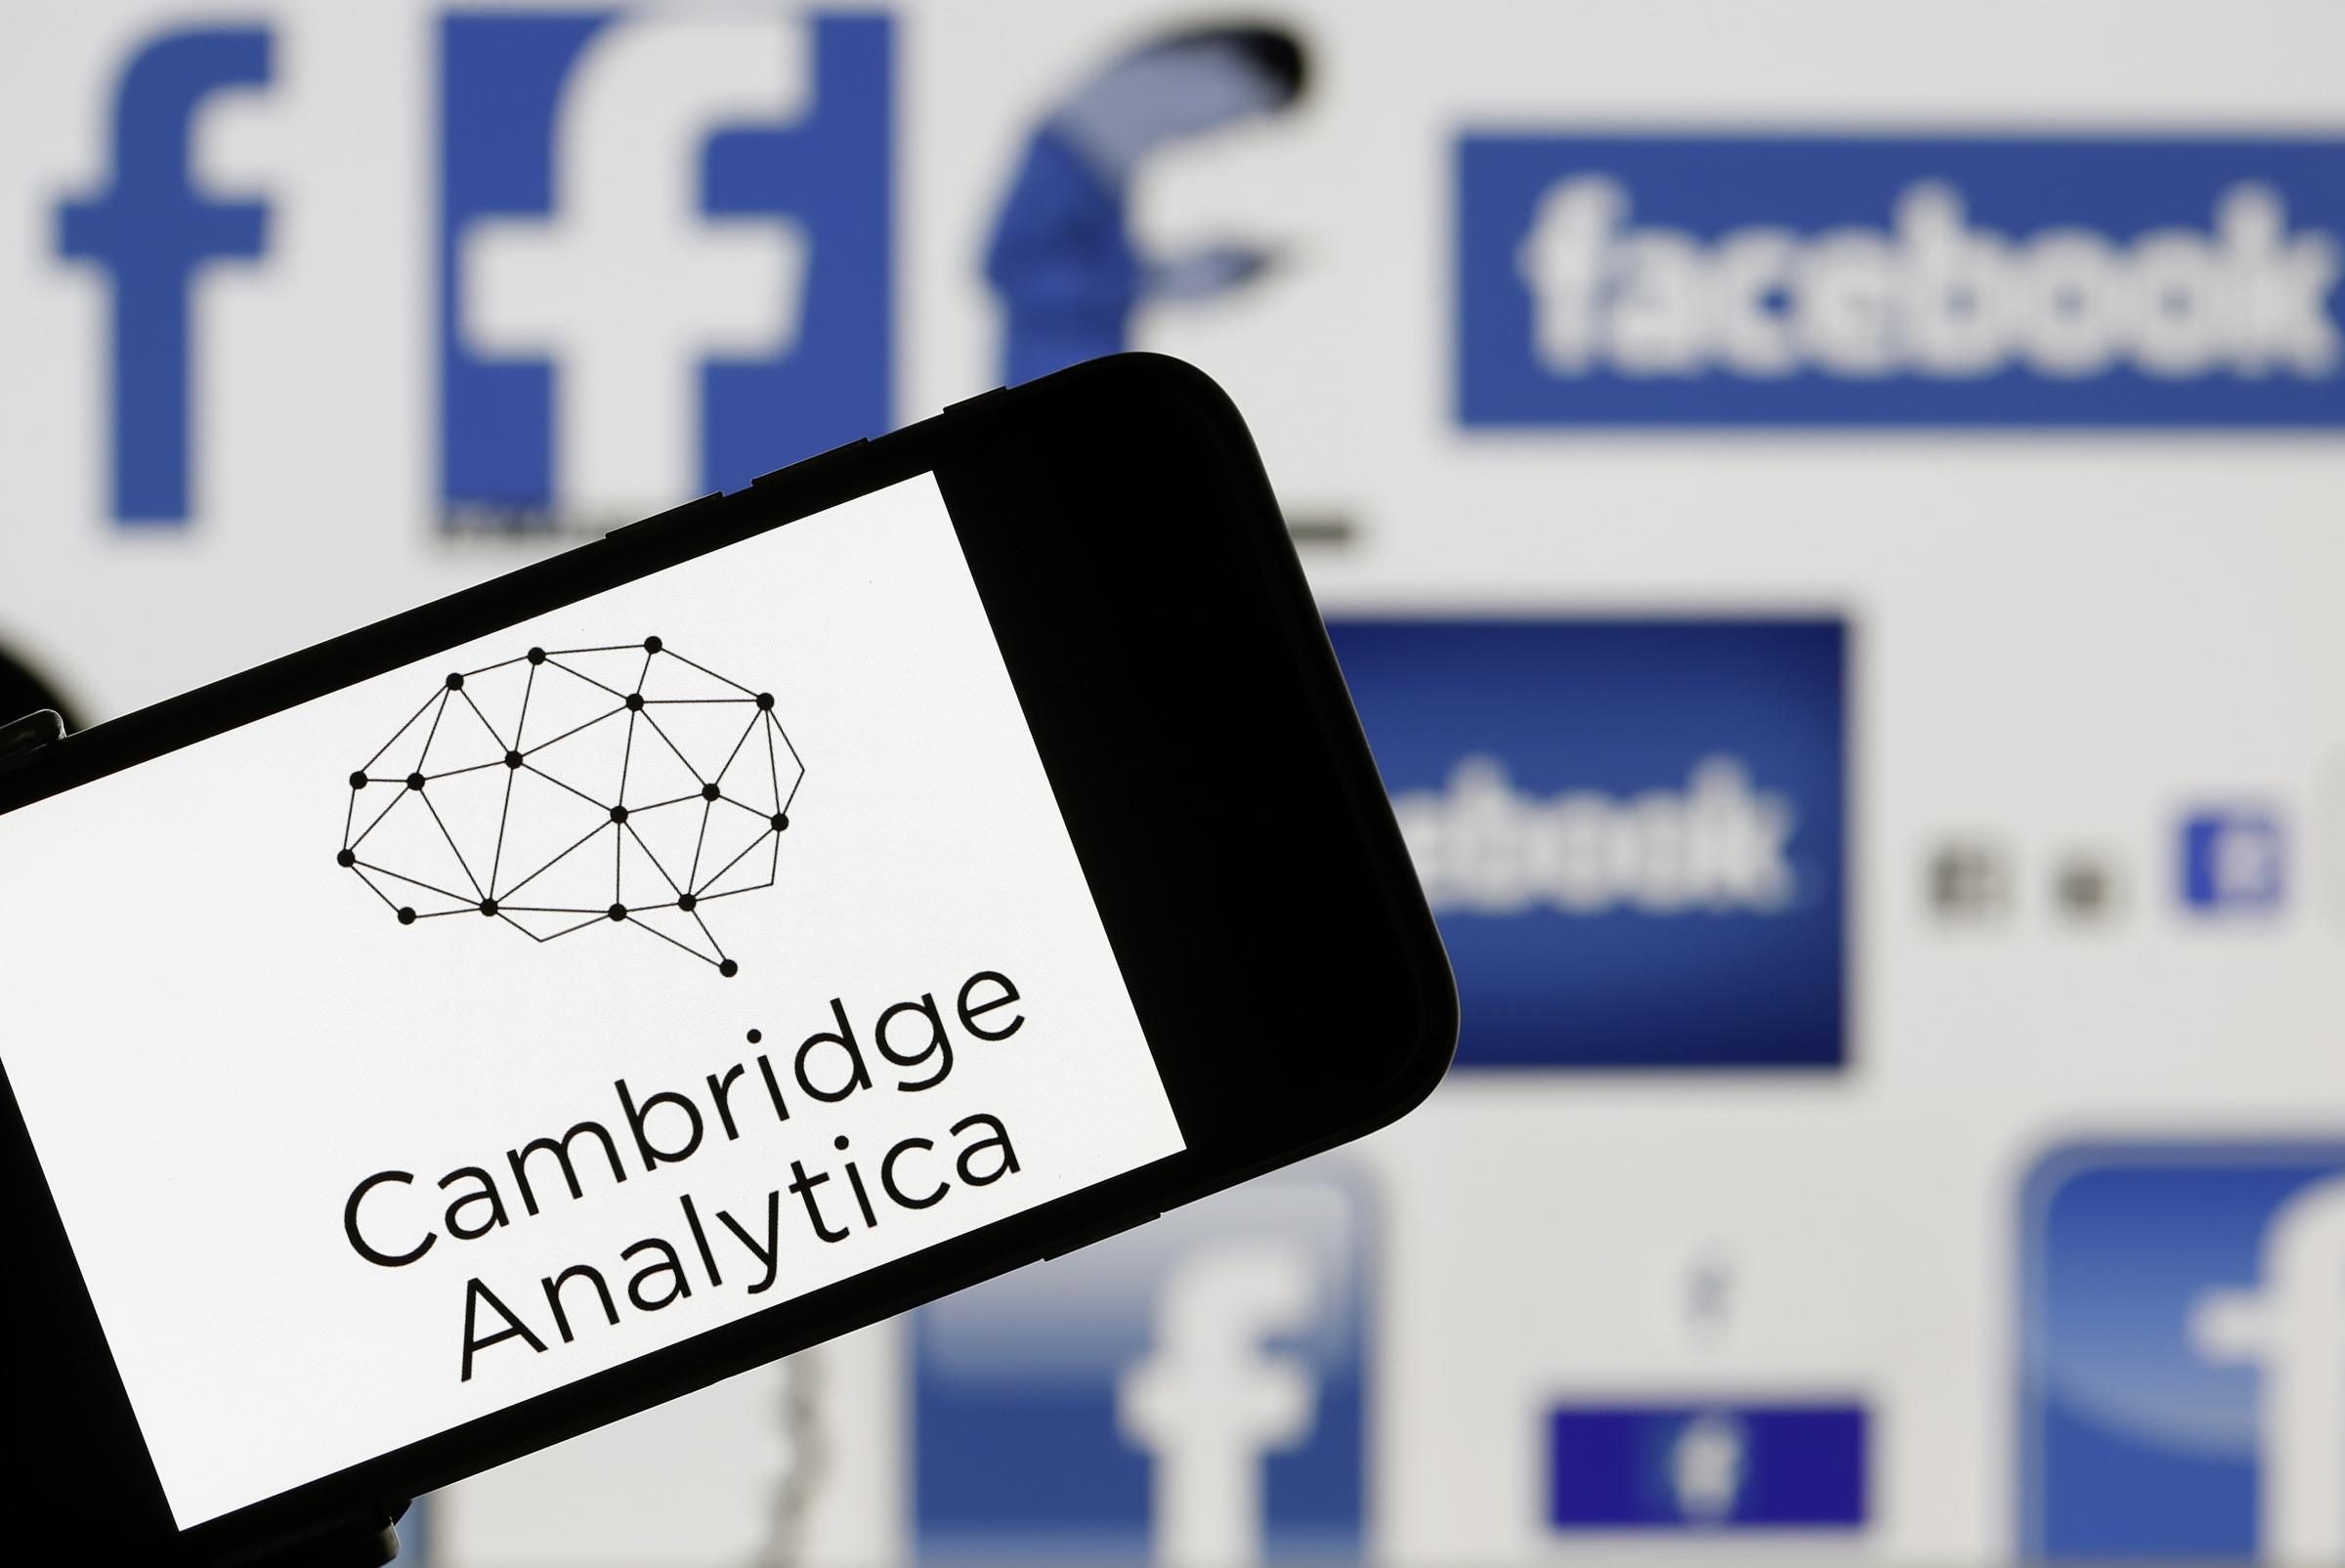 SNP releases email contacts with Cambridge Analytica